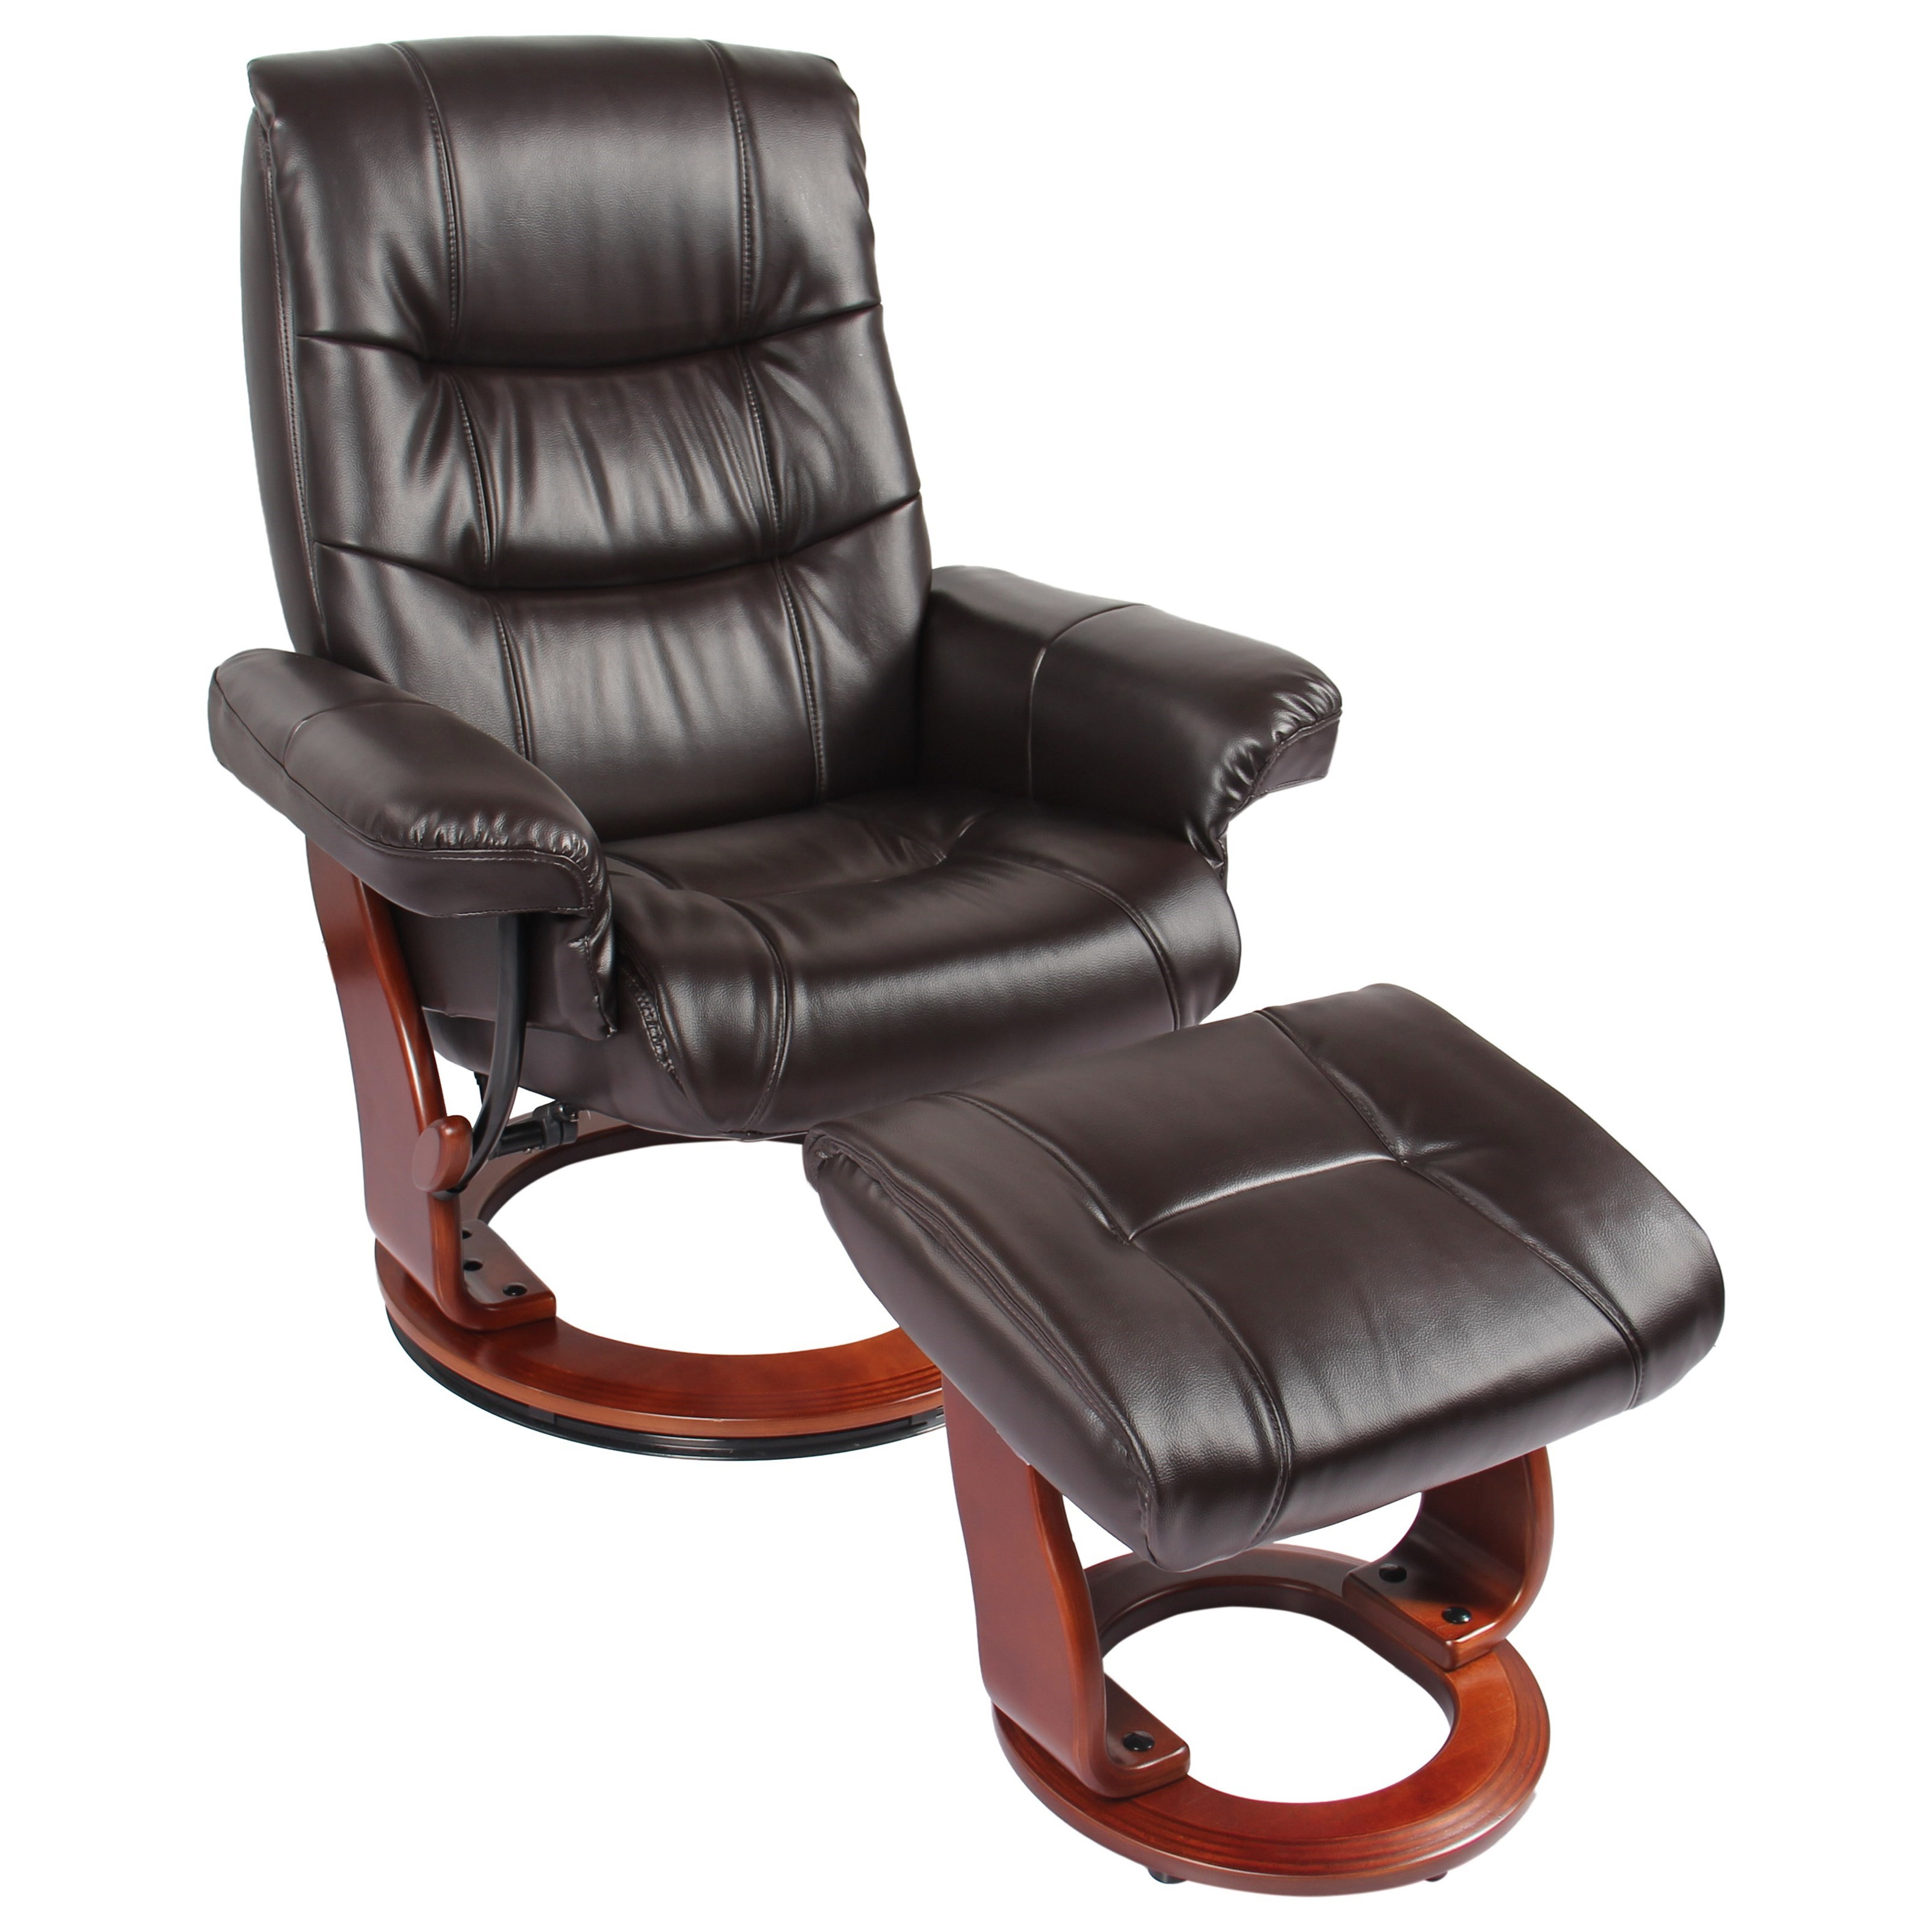 Rosa II Reclining Chair and Ottoman at Sadler's Home Furnishings